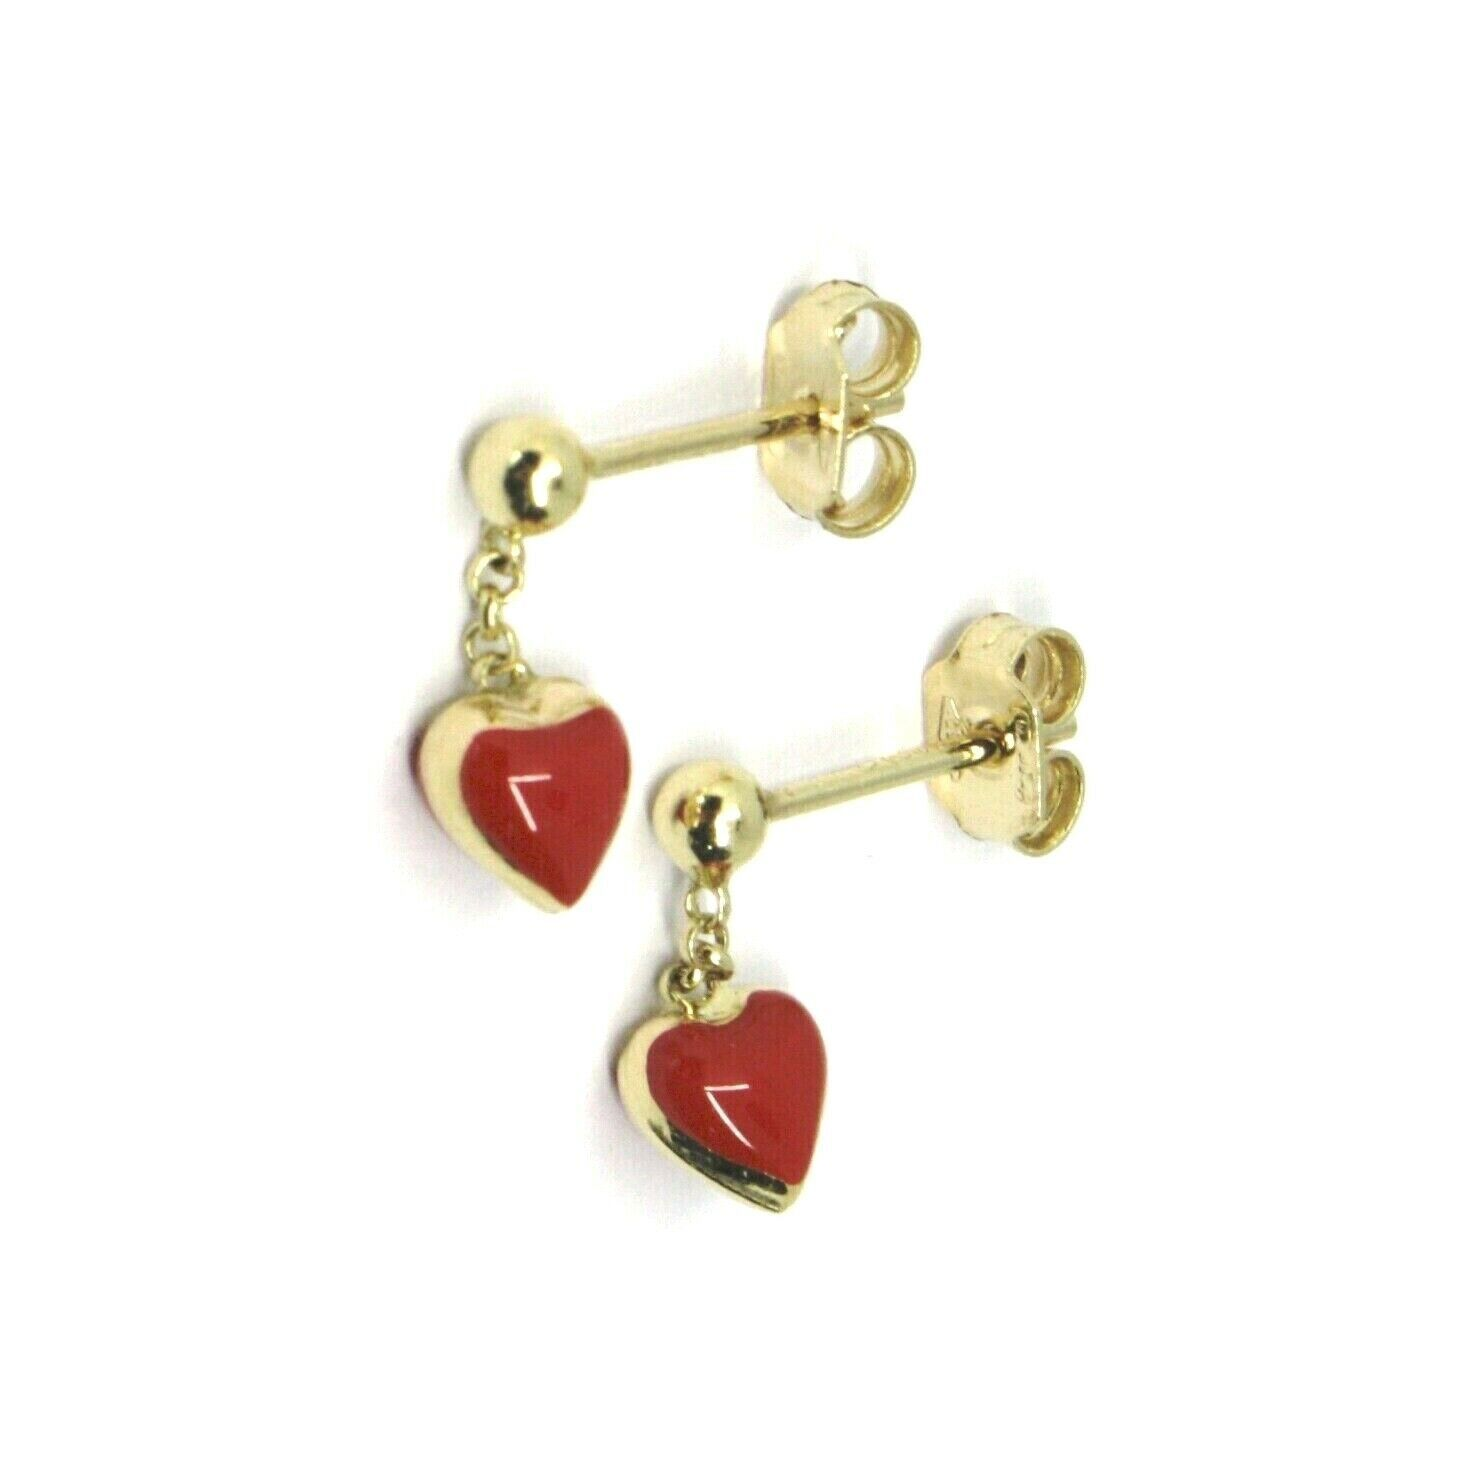 18K YELLOW GOLD PENDANT 12MM EARRINGS WITH RED ENAMEL MINI HEART, MADE IN ITALY